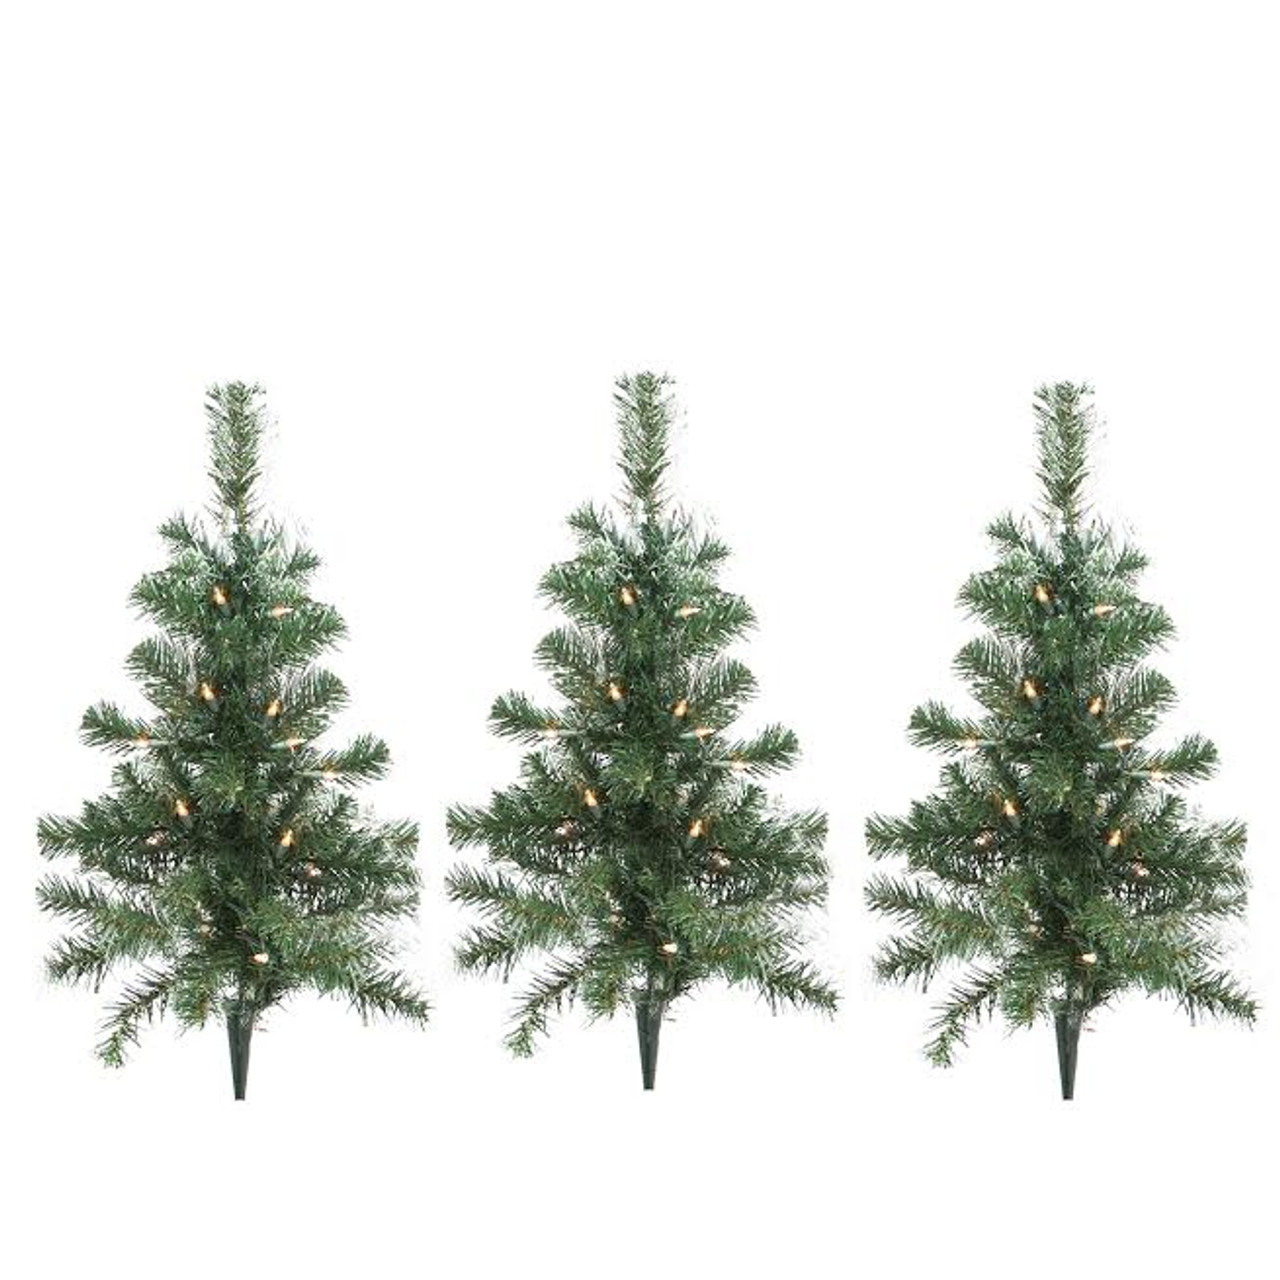 Pack Of 3 Lighted Christmas Tree Driveway Or Pathway